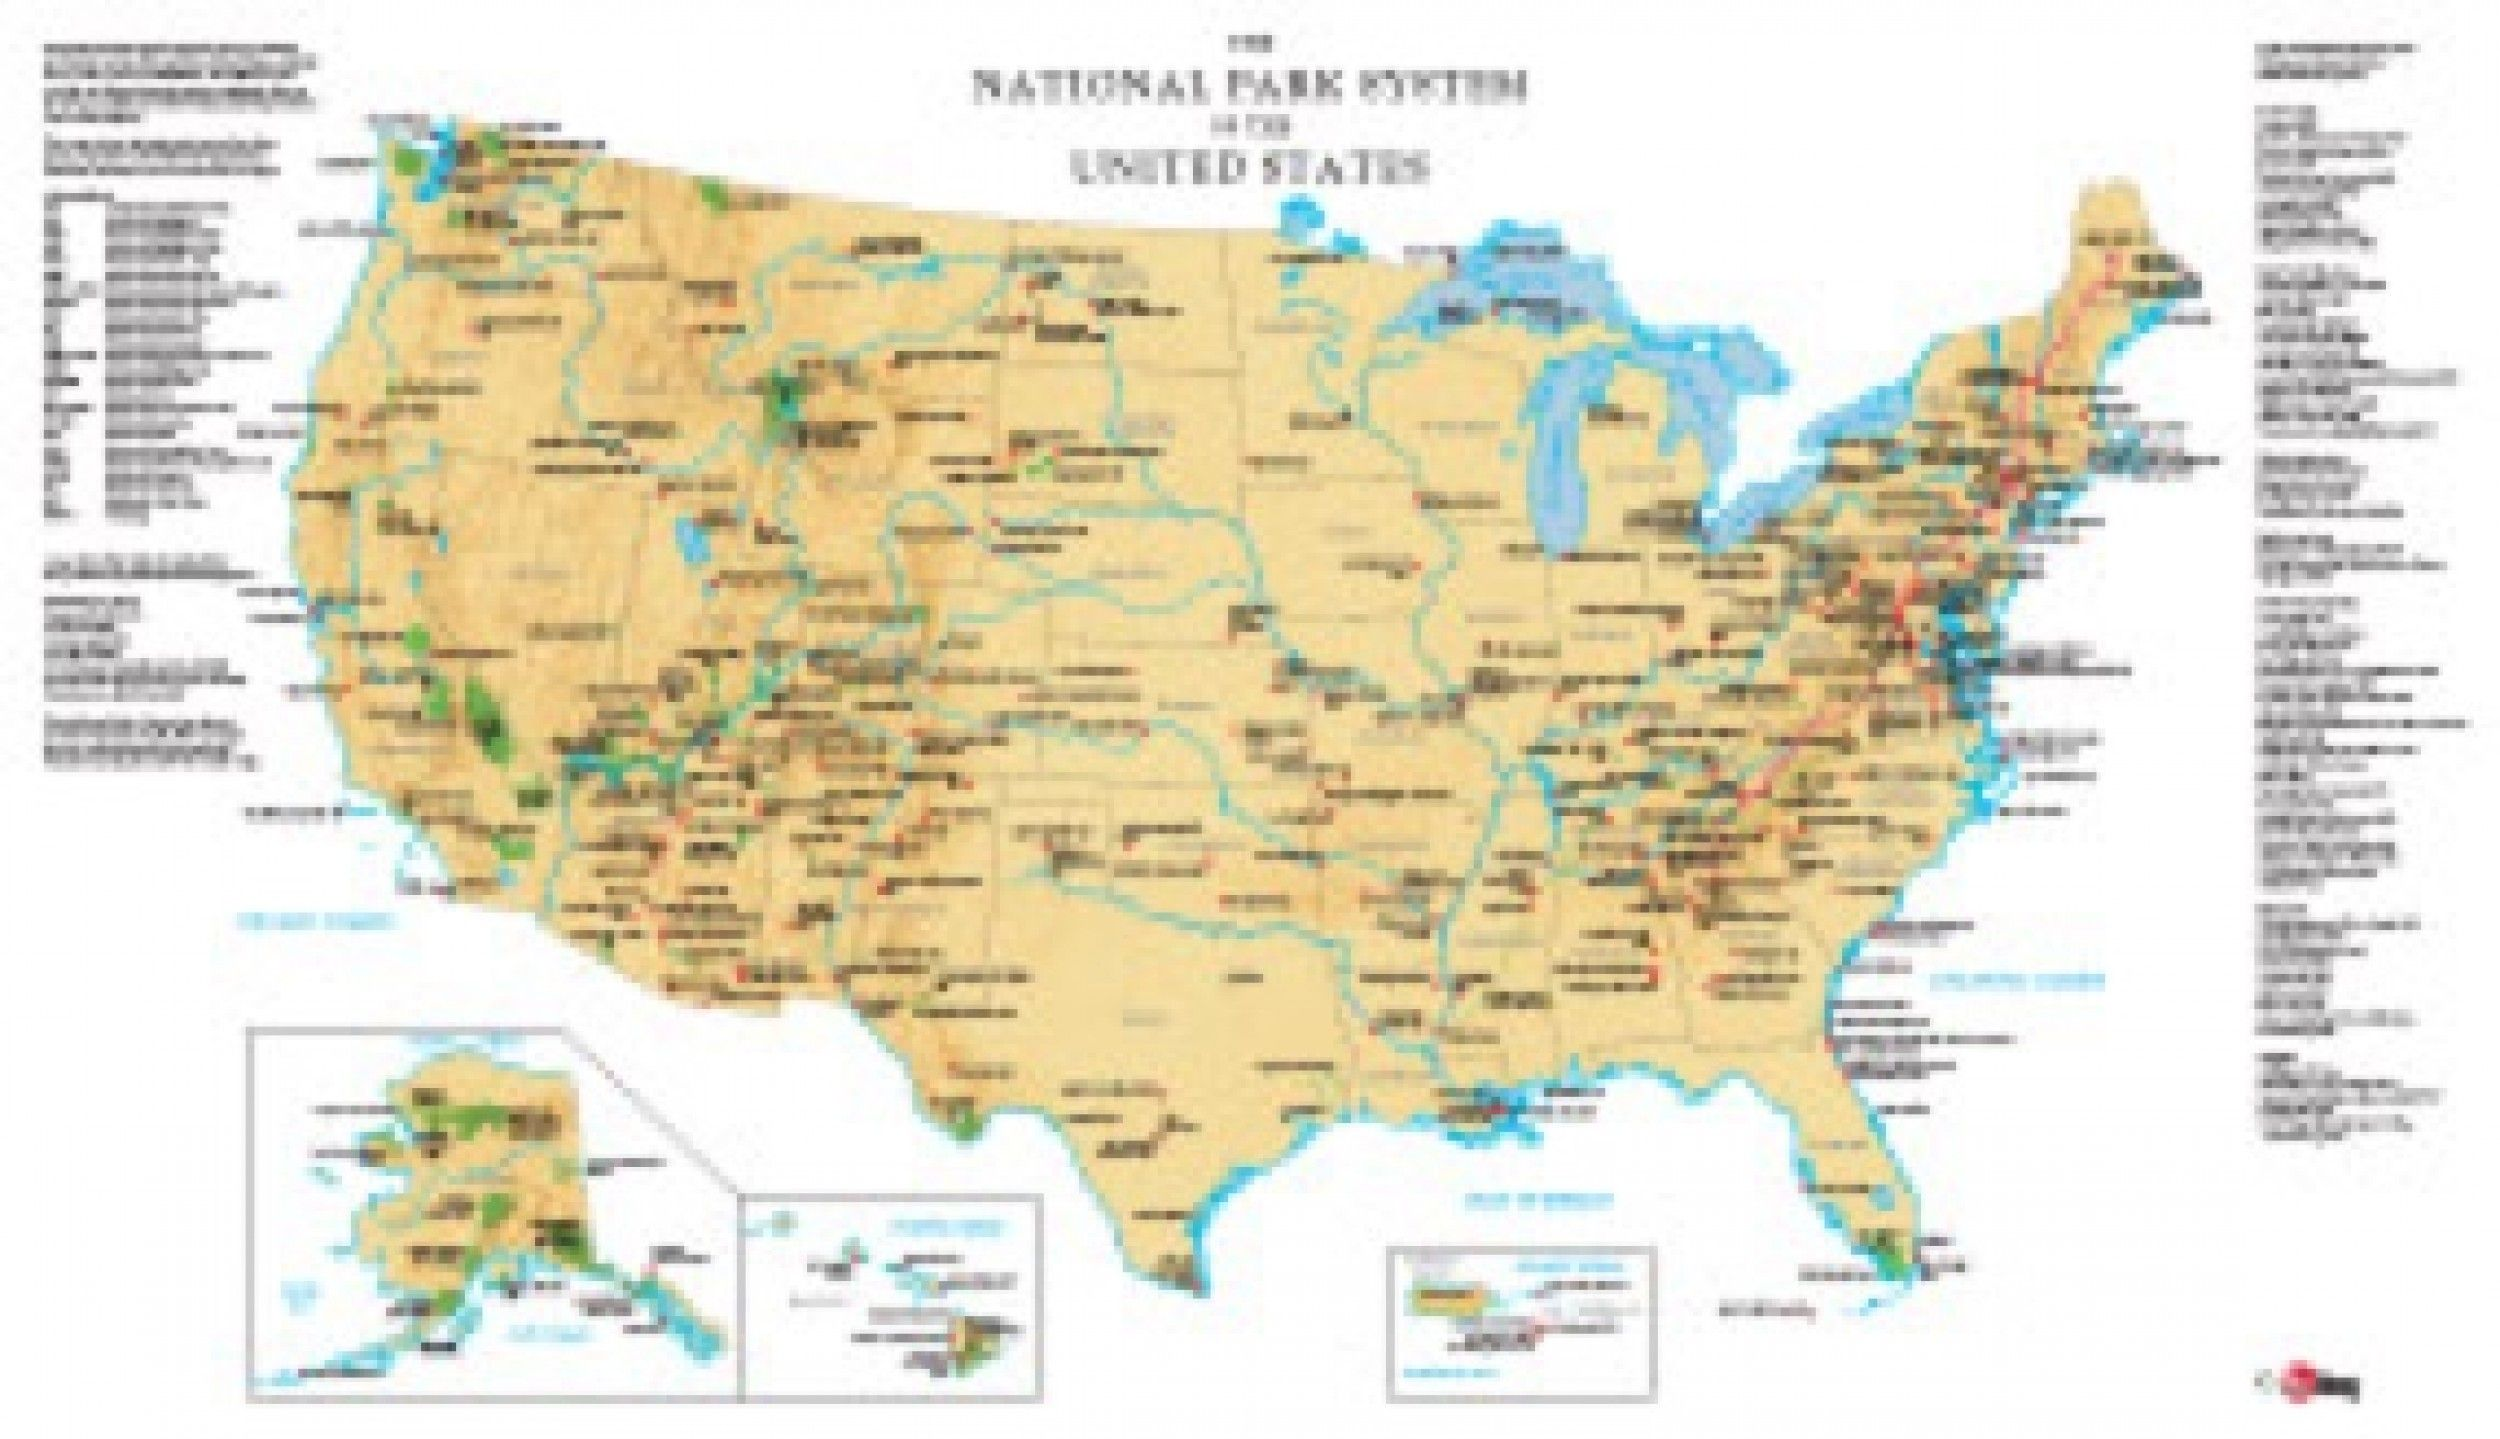 Pin by 云 汪 on USA national park | National parks, National parks ...